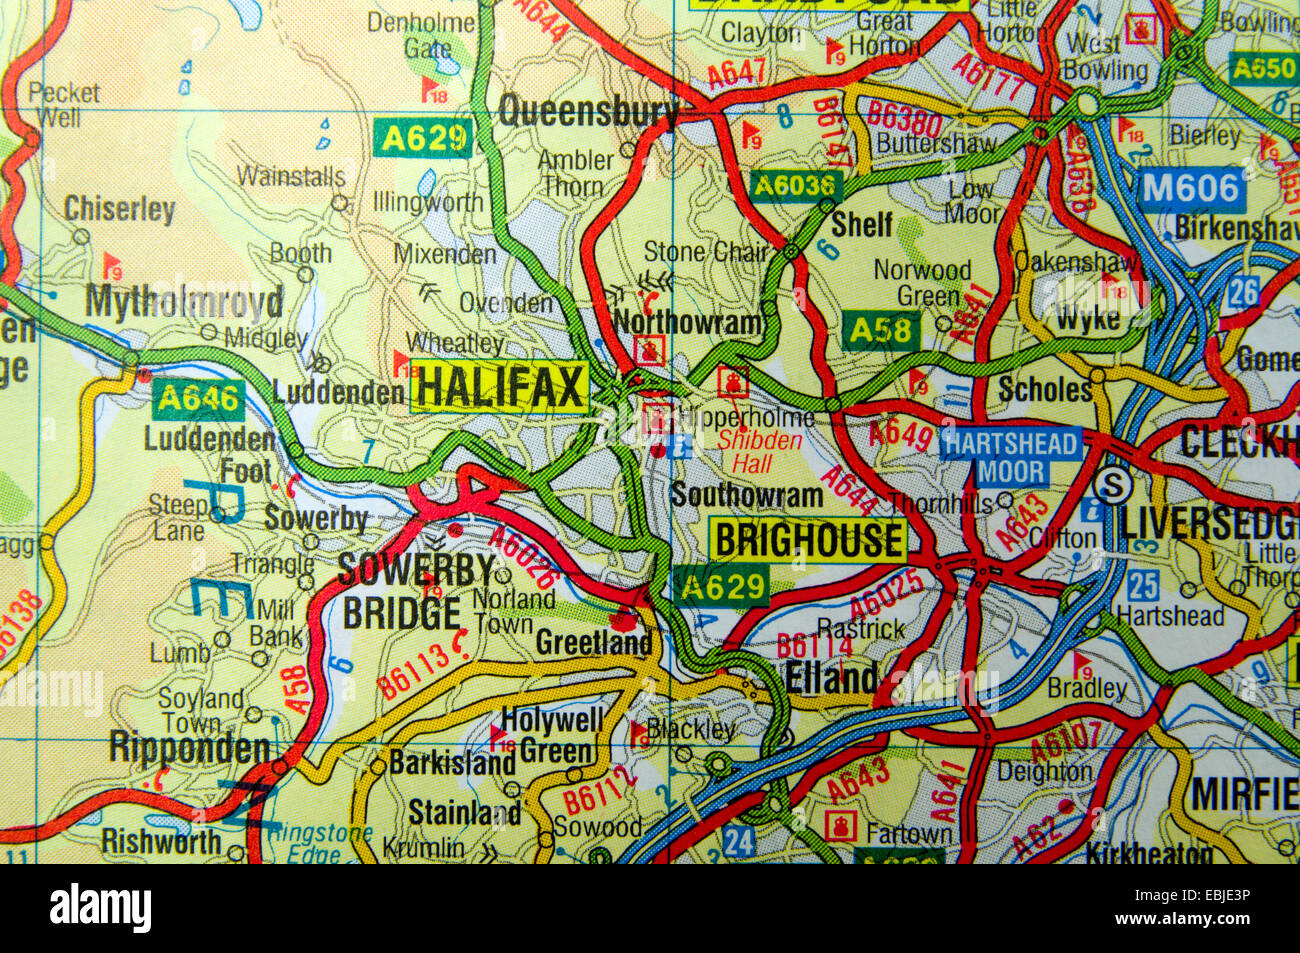 Worksheet. Road Map of Halifax area of West Yorkshire England Stock Photo